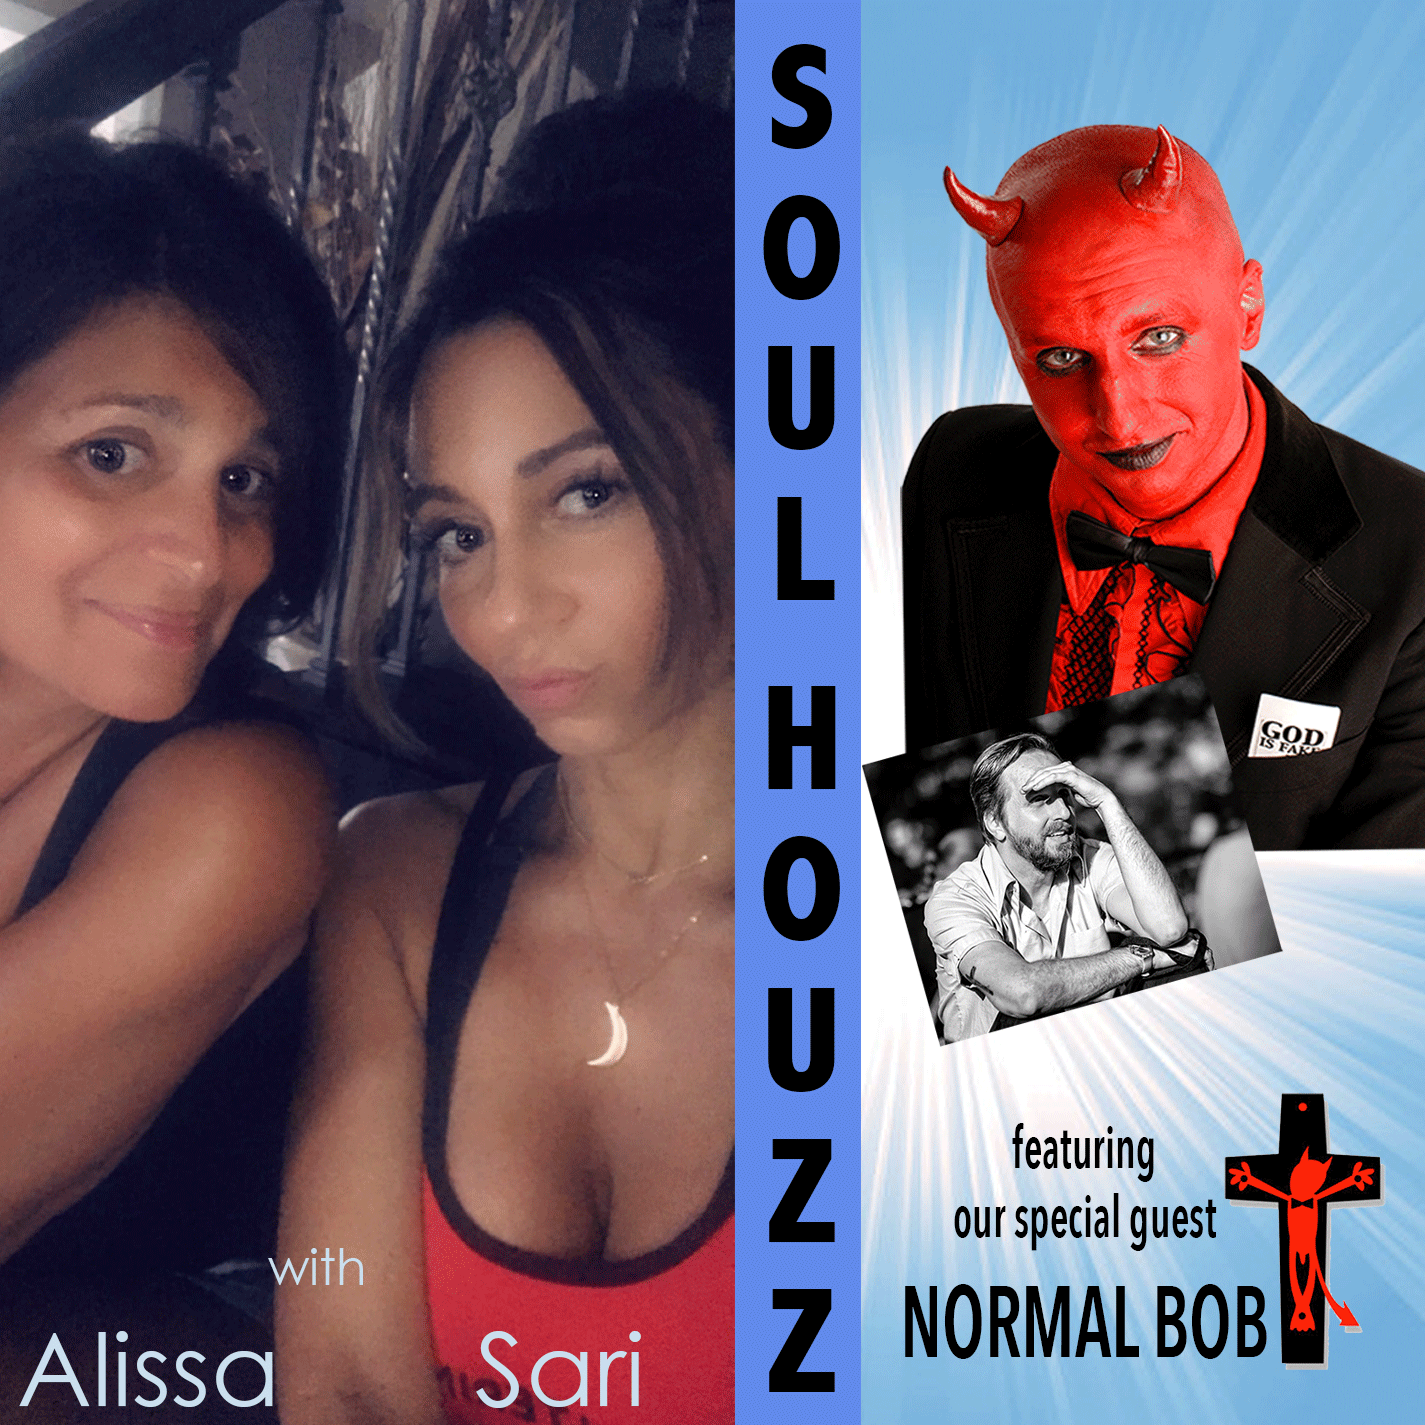 August 2020 SoulHouzz interview w/NormalBob